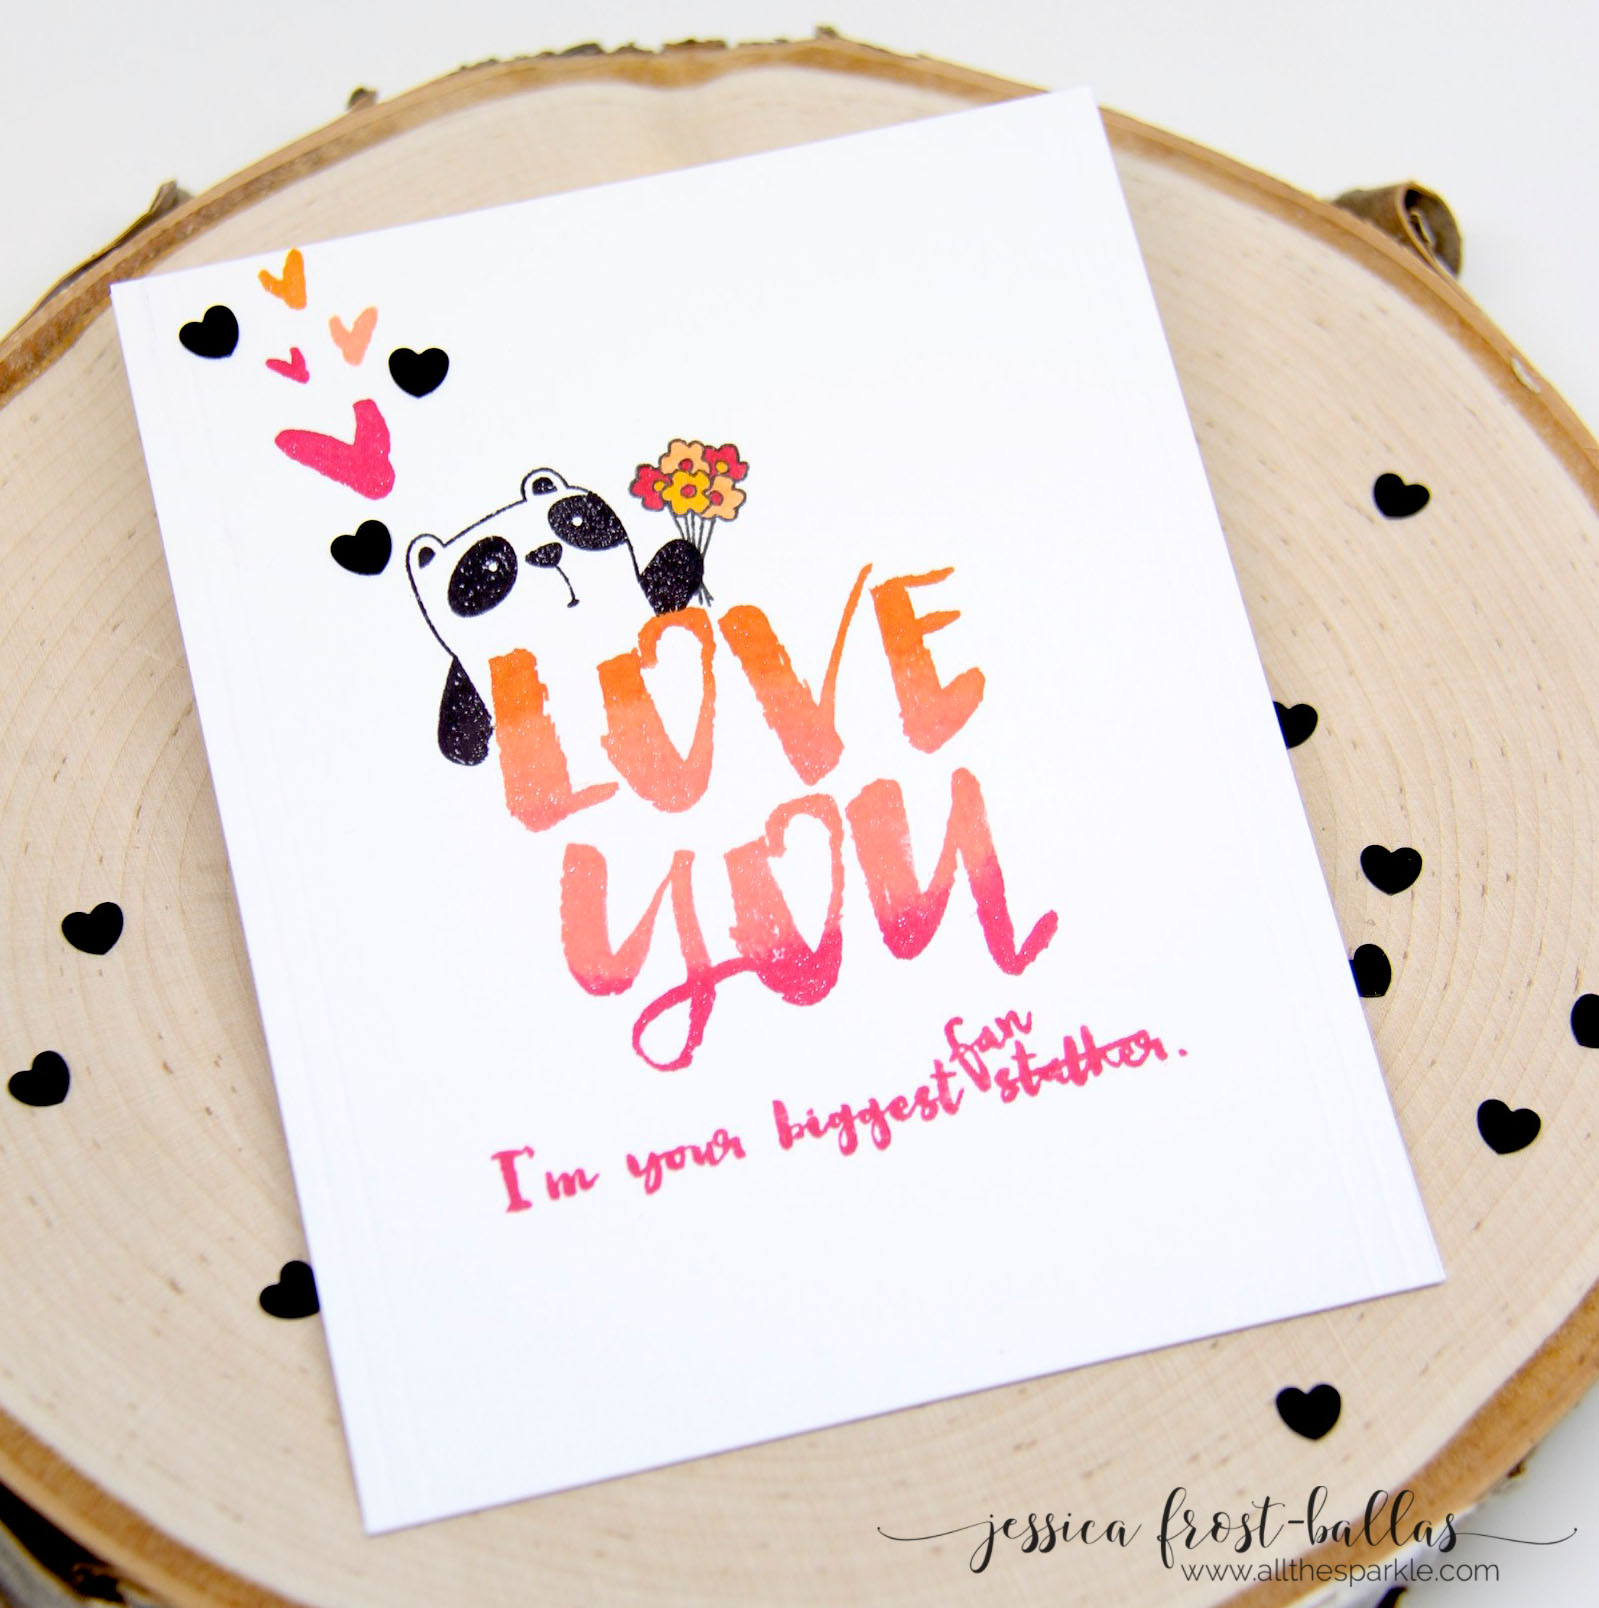 I'm Your Biggest Fan, 2nd Blogiversary, and a Giveaway!